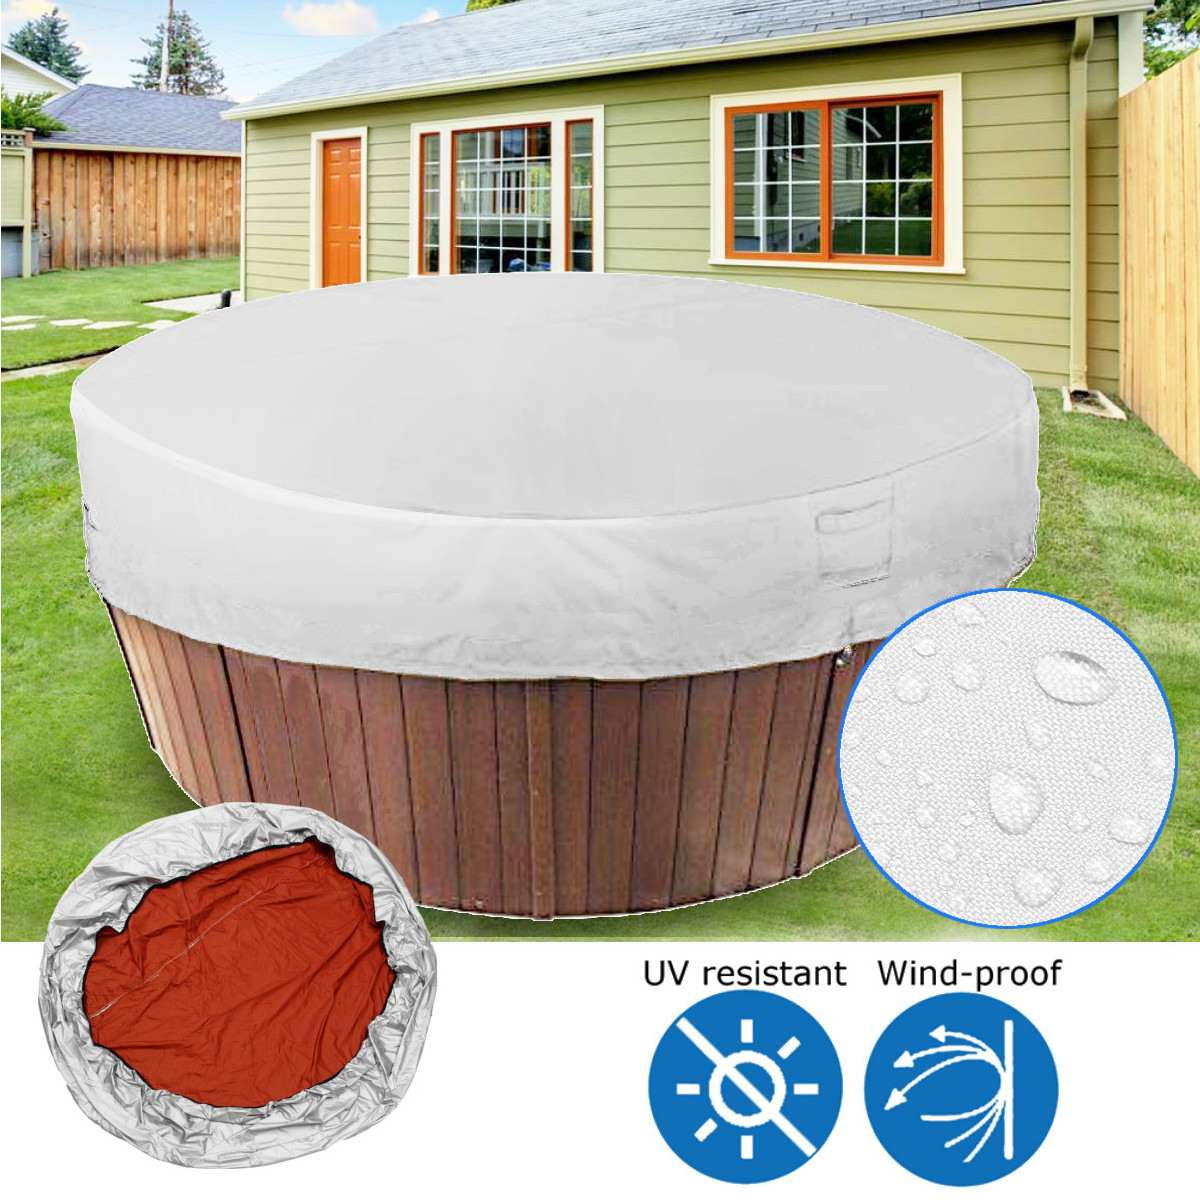 Bathtub Cover Hot Tub Weather Covers Shade Bath Tub Dust Cover Protector UV Proof Waterproof Spa Covers 2 Sizes Light Grey